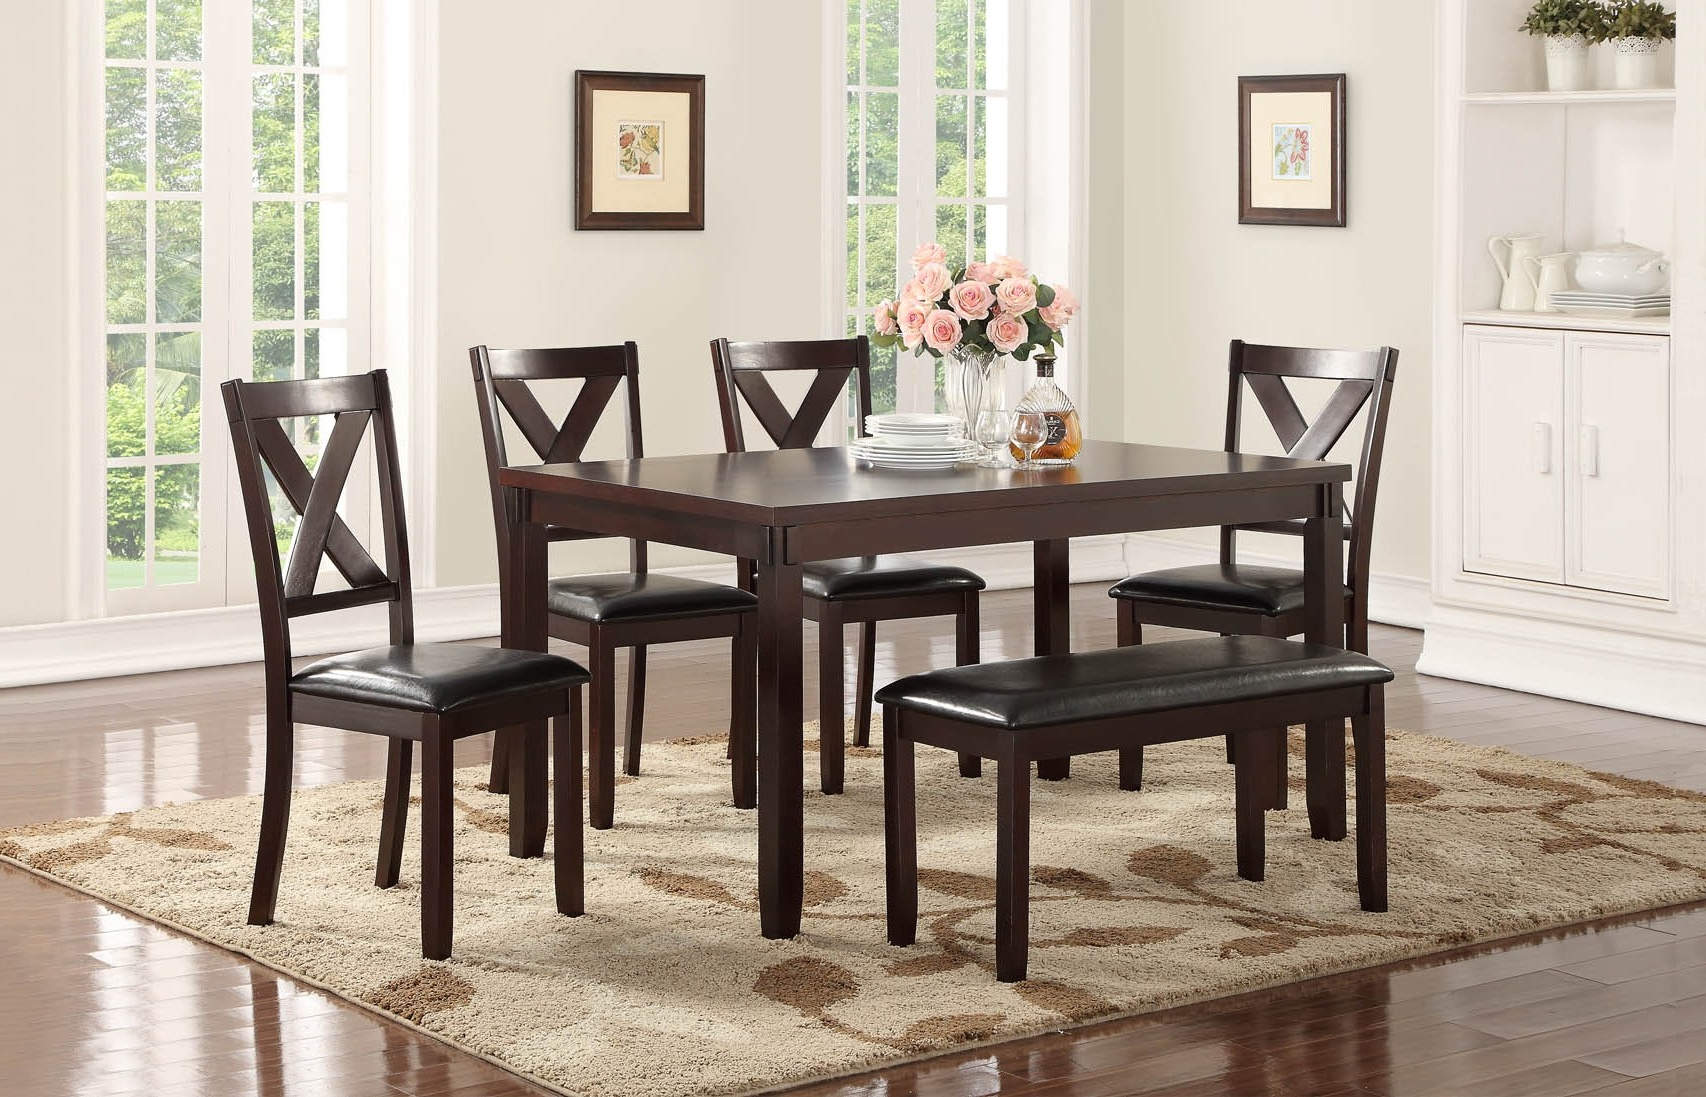 Penelope Collection 6 Pc Dining Set With Bench (View 17 of 25)